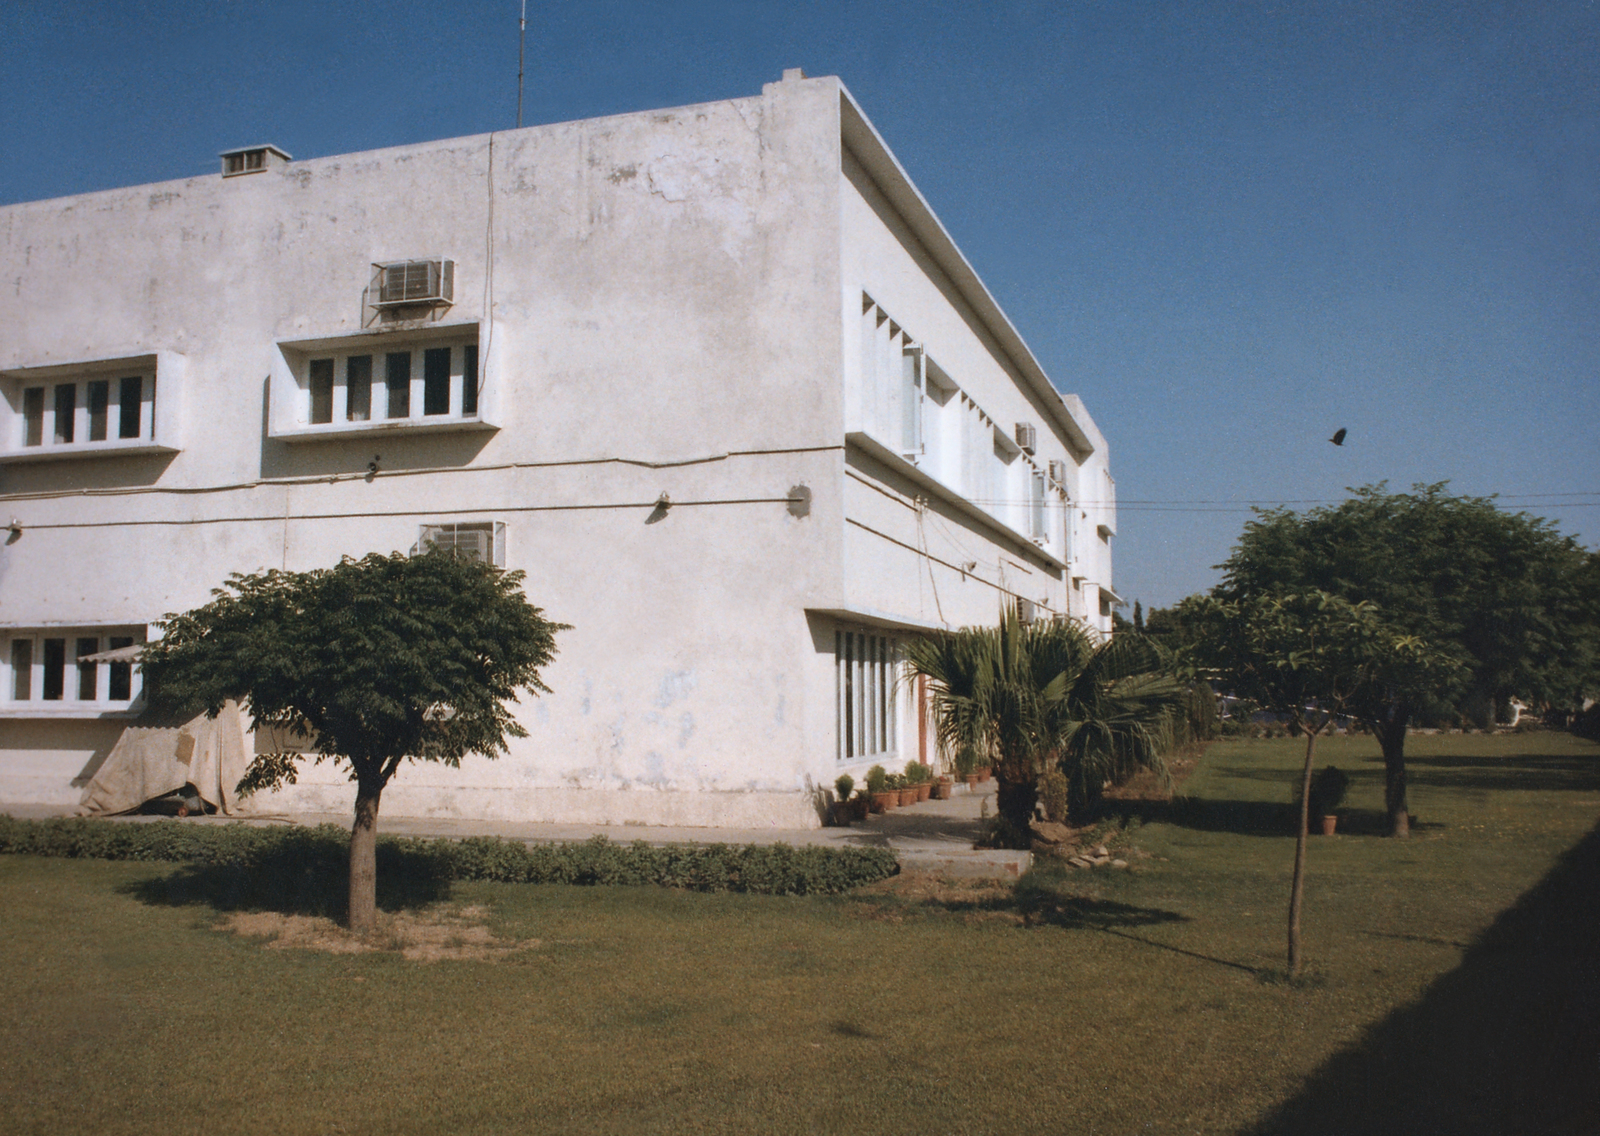 Lahore - Multi-Unit Residential Building - 1985